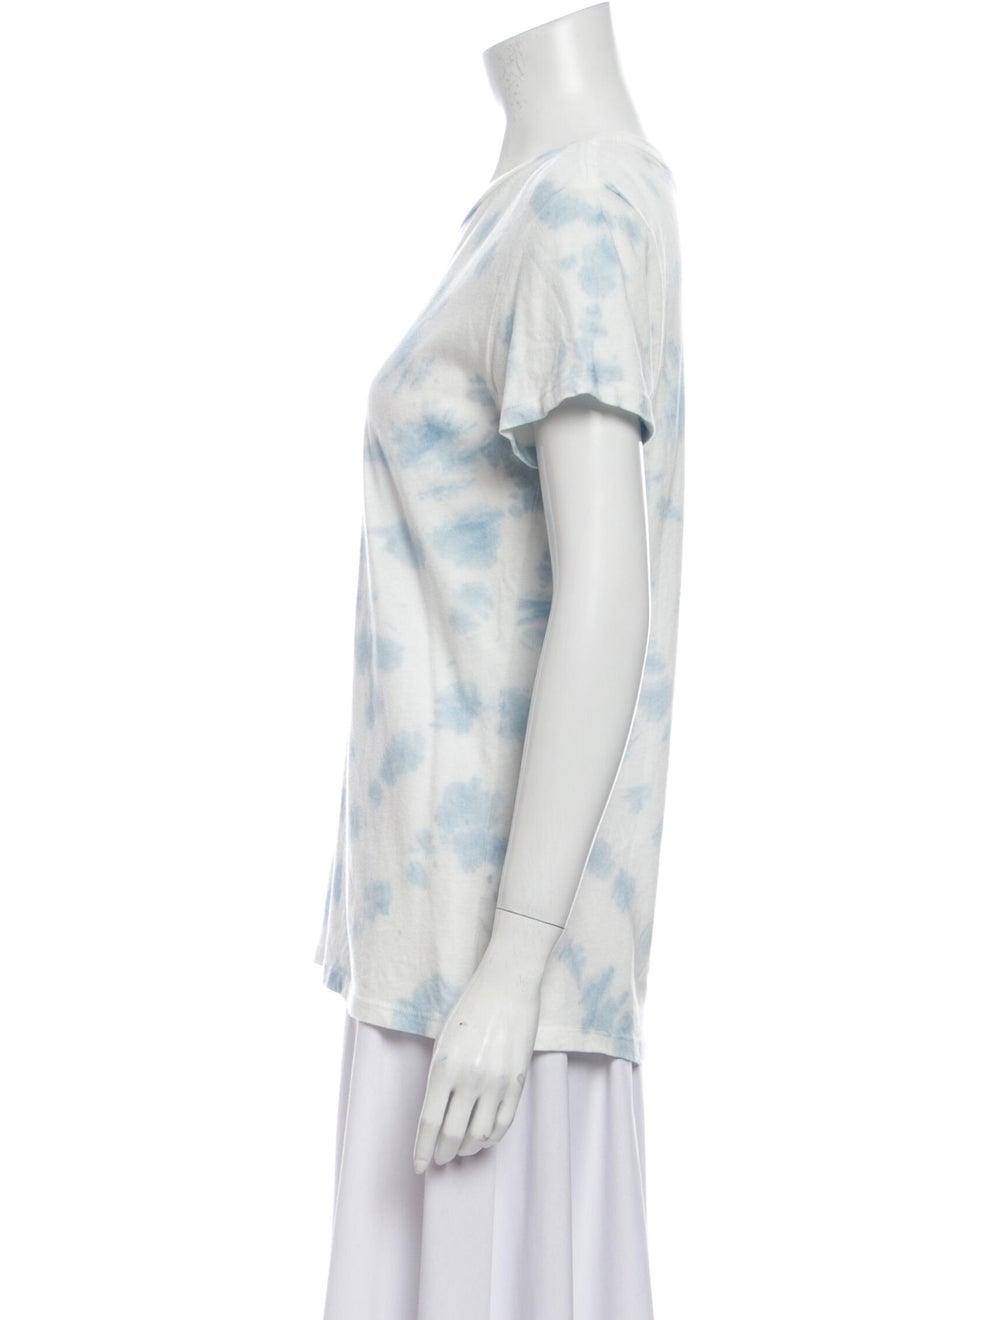 Reformation Tie-Dye Print Scoop Neck T-Shirt Blue - image 2